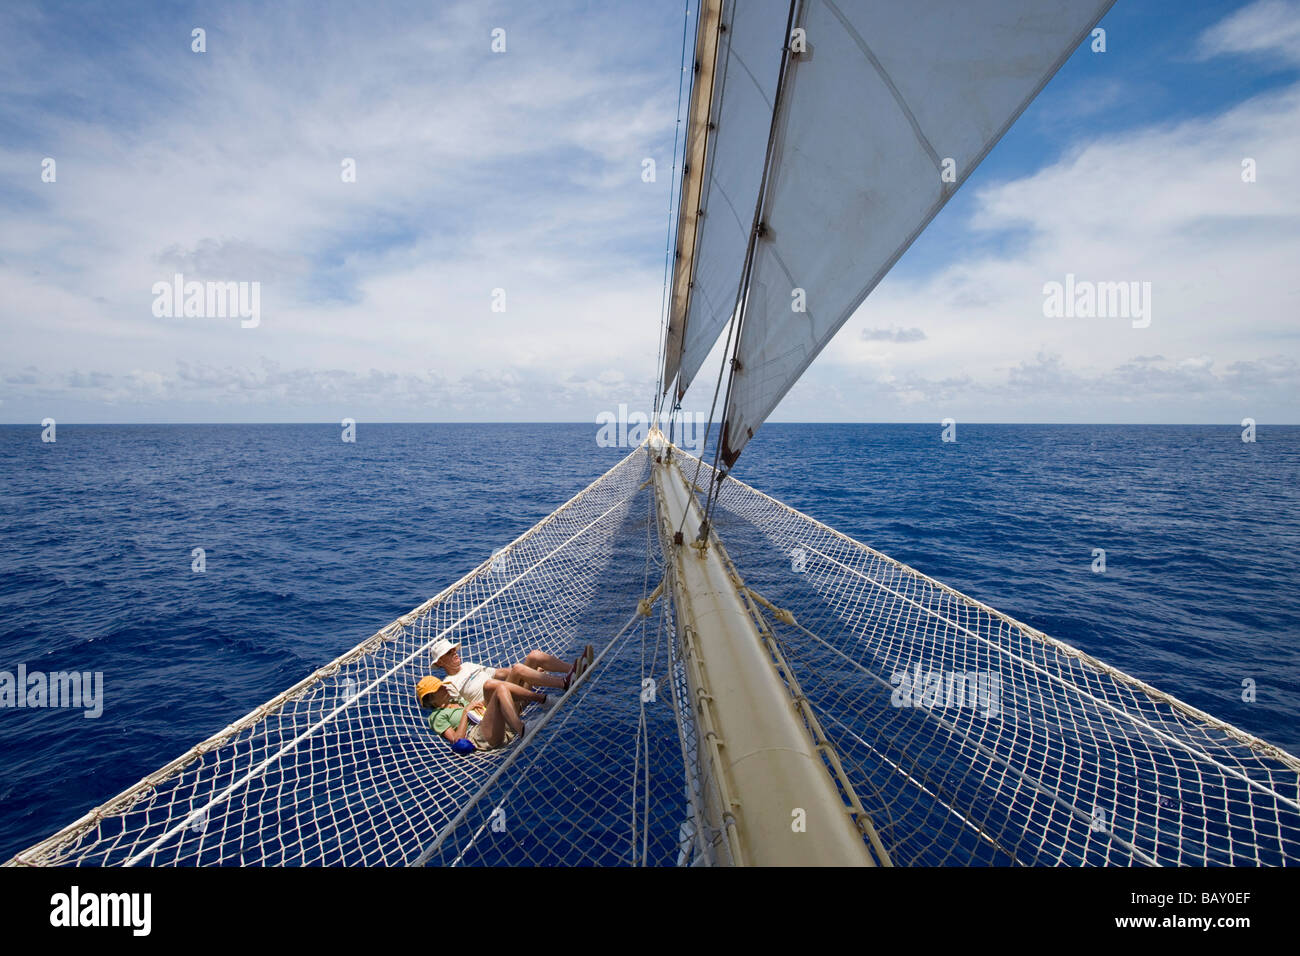 Couple relaxing in bowsprit net of sailing Cruiseship Star Flyer (Star Clippers Cruises), Bora Bora, Society Islands, - Stock Image